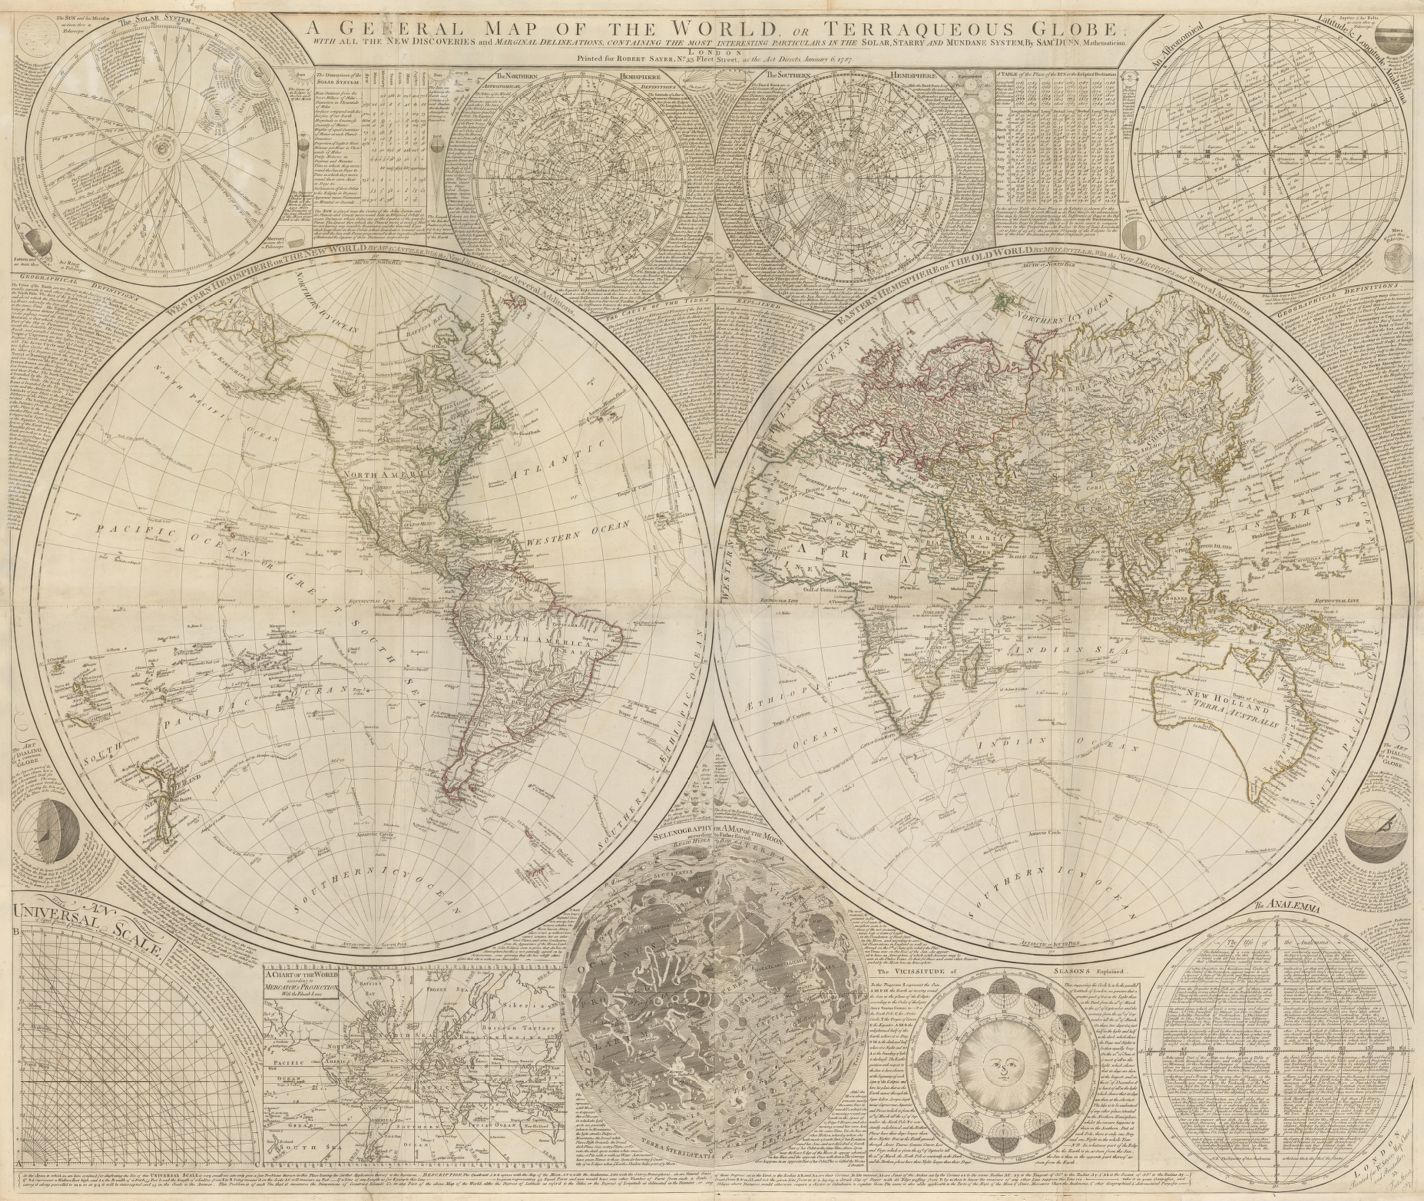 Robert Sayer, A General Map of the World or Terraqueous Globe, (1787). Wall map, copperplate, 107.5 × 127 cm., MacLean Collection 26743.